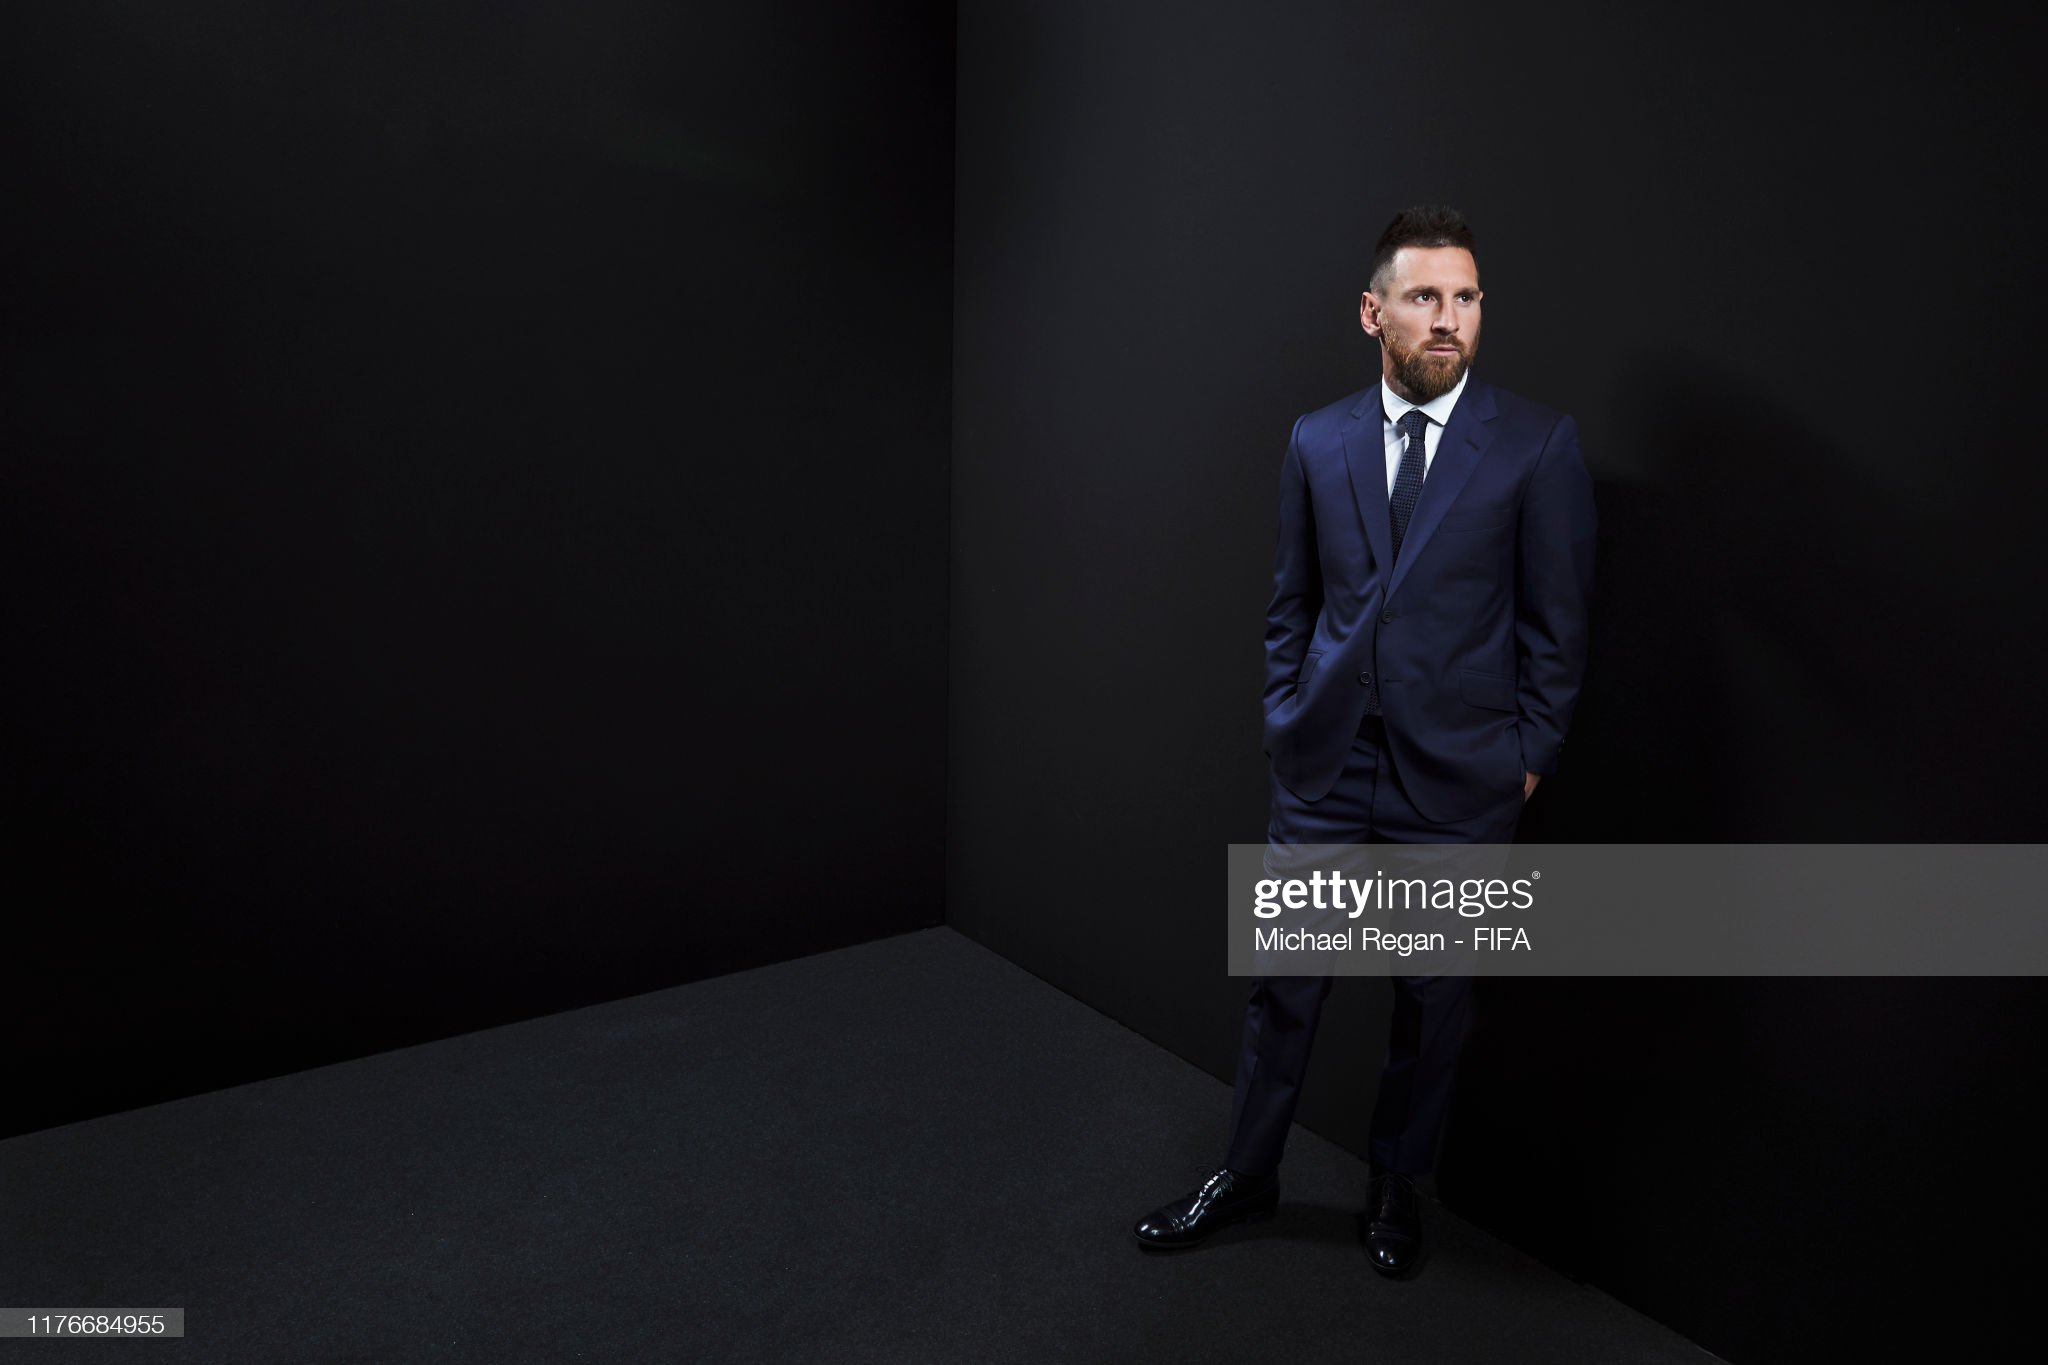 The Best FIFA Football Awards 2019 Lionel-messi-of-barcelona-poses-for-a-portrait-in-the-photo-booth-to-picture-id1176684955?s=2048x2048